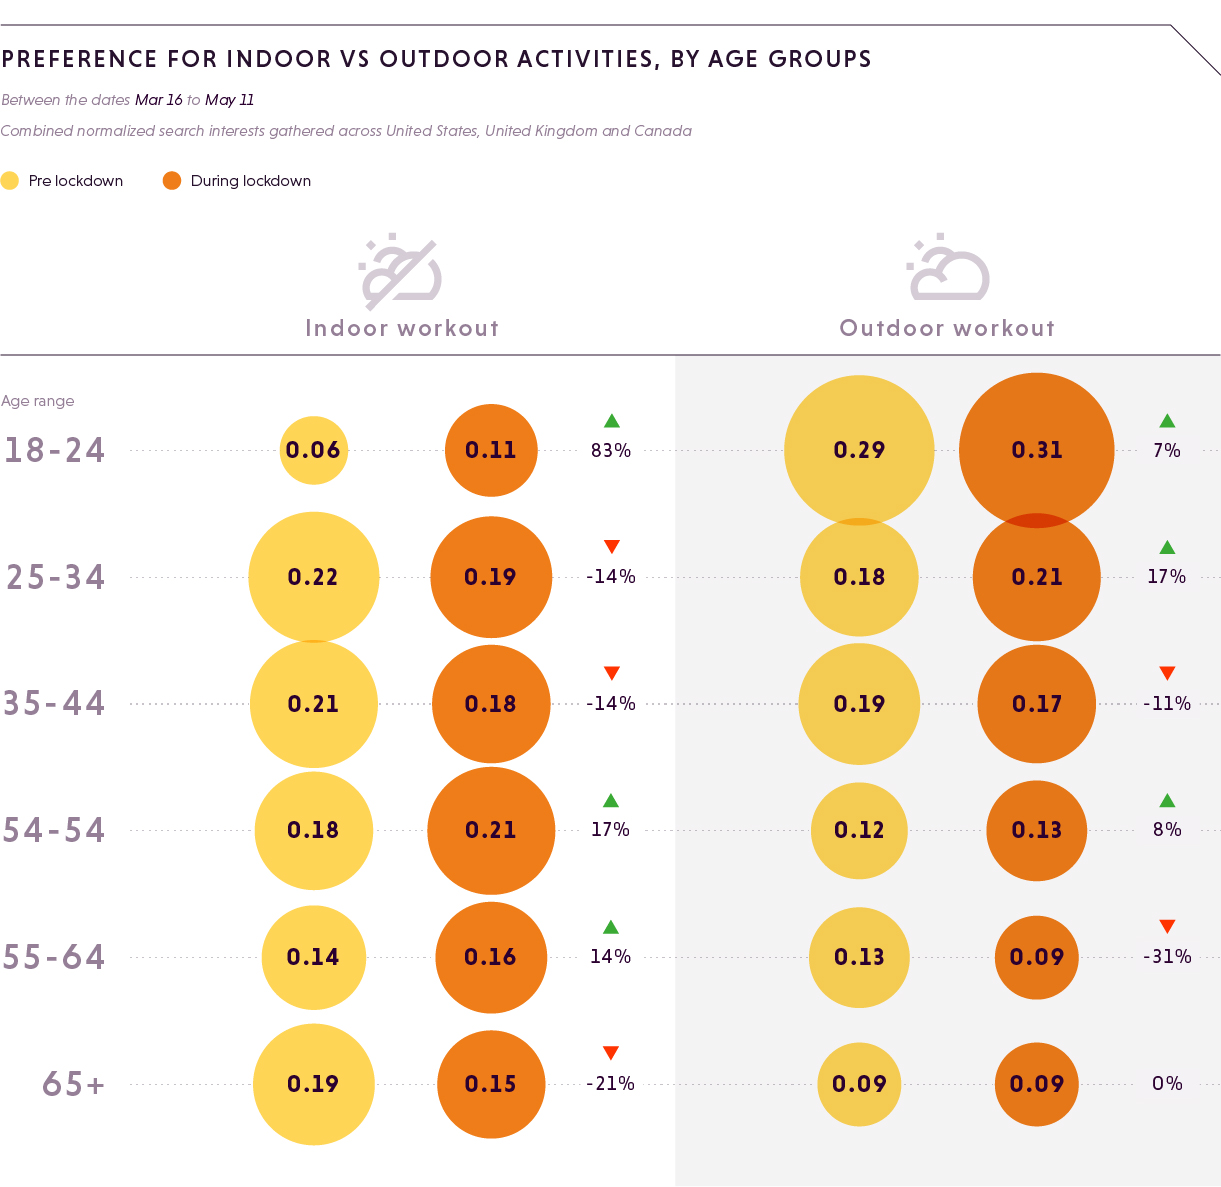 Preference for Indoor Vs Outdoor activities, by age groups